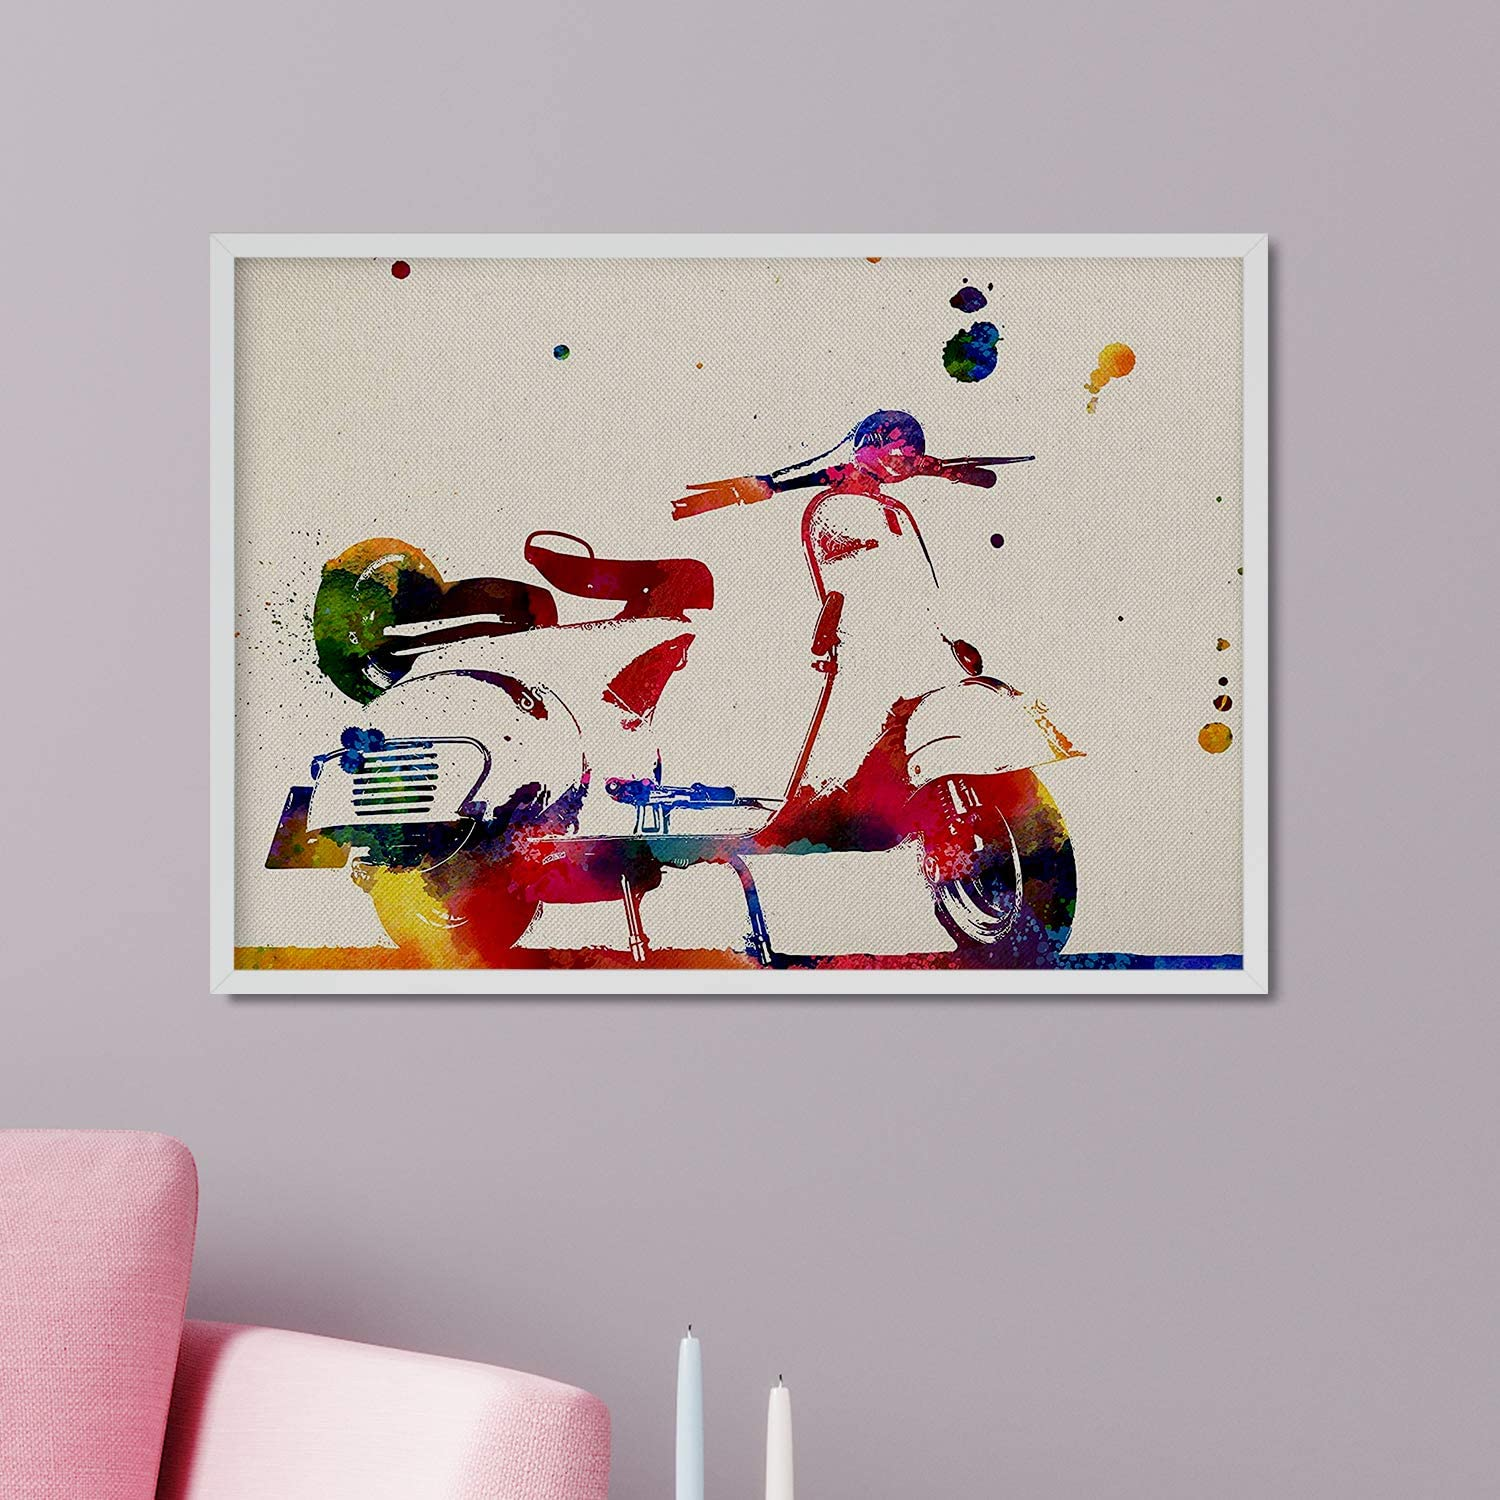 Nacnic Prints Vespa Scooted - Set of 1 - Unframed 8x11 inch Size - 250g Paper - Beautiful Poster Painting for Home Office Living Room